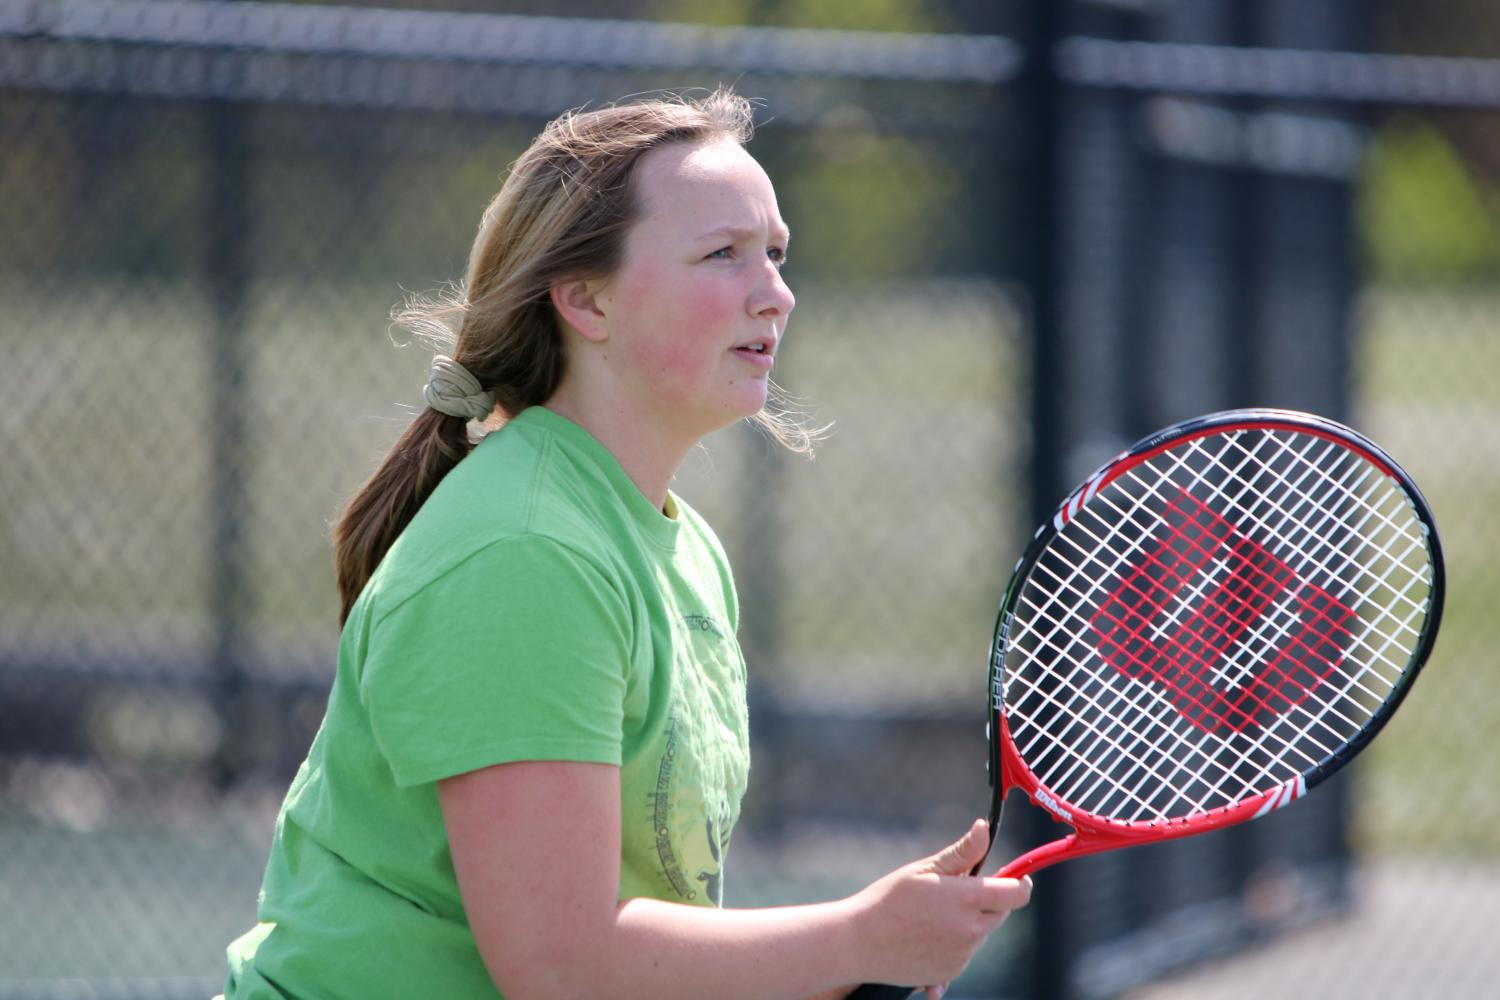 Getting ready to start up a practice match, freshman Abby Lamb keeps her eye on the ball.